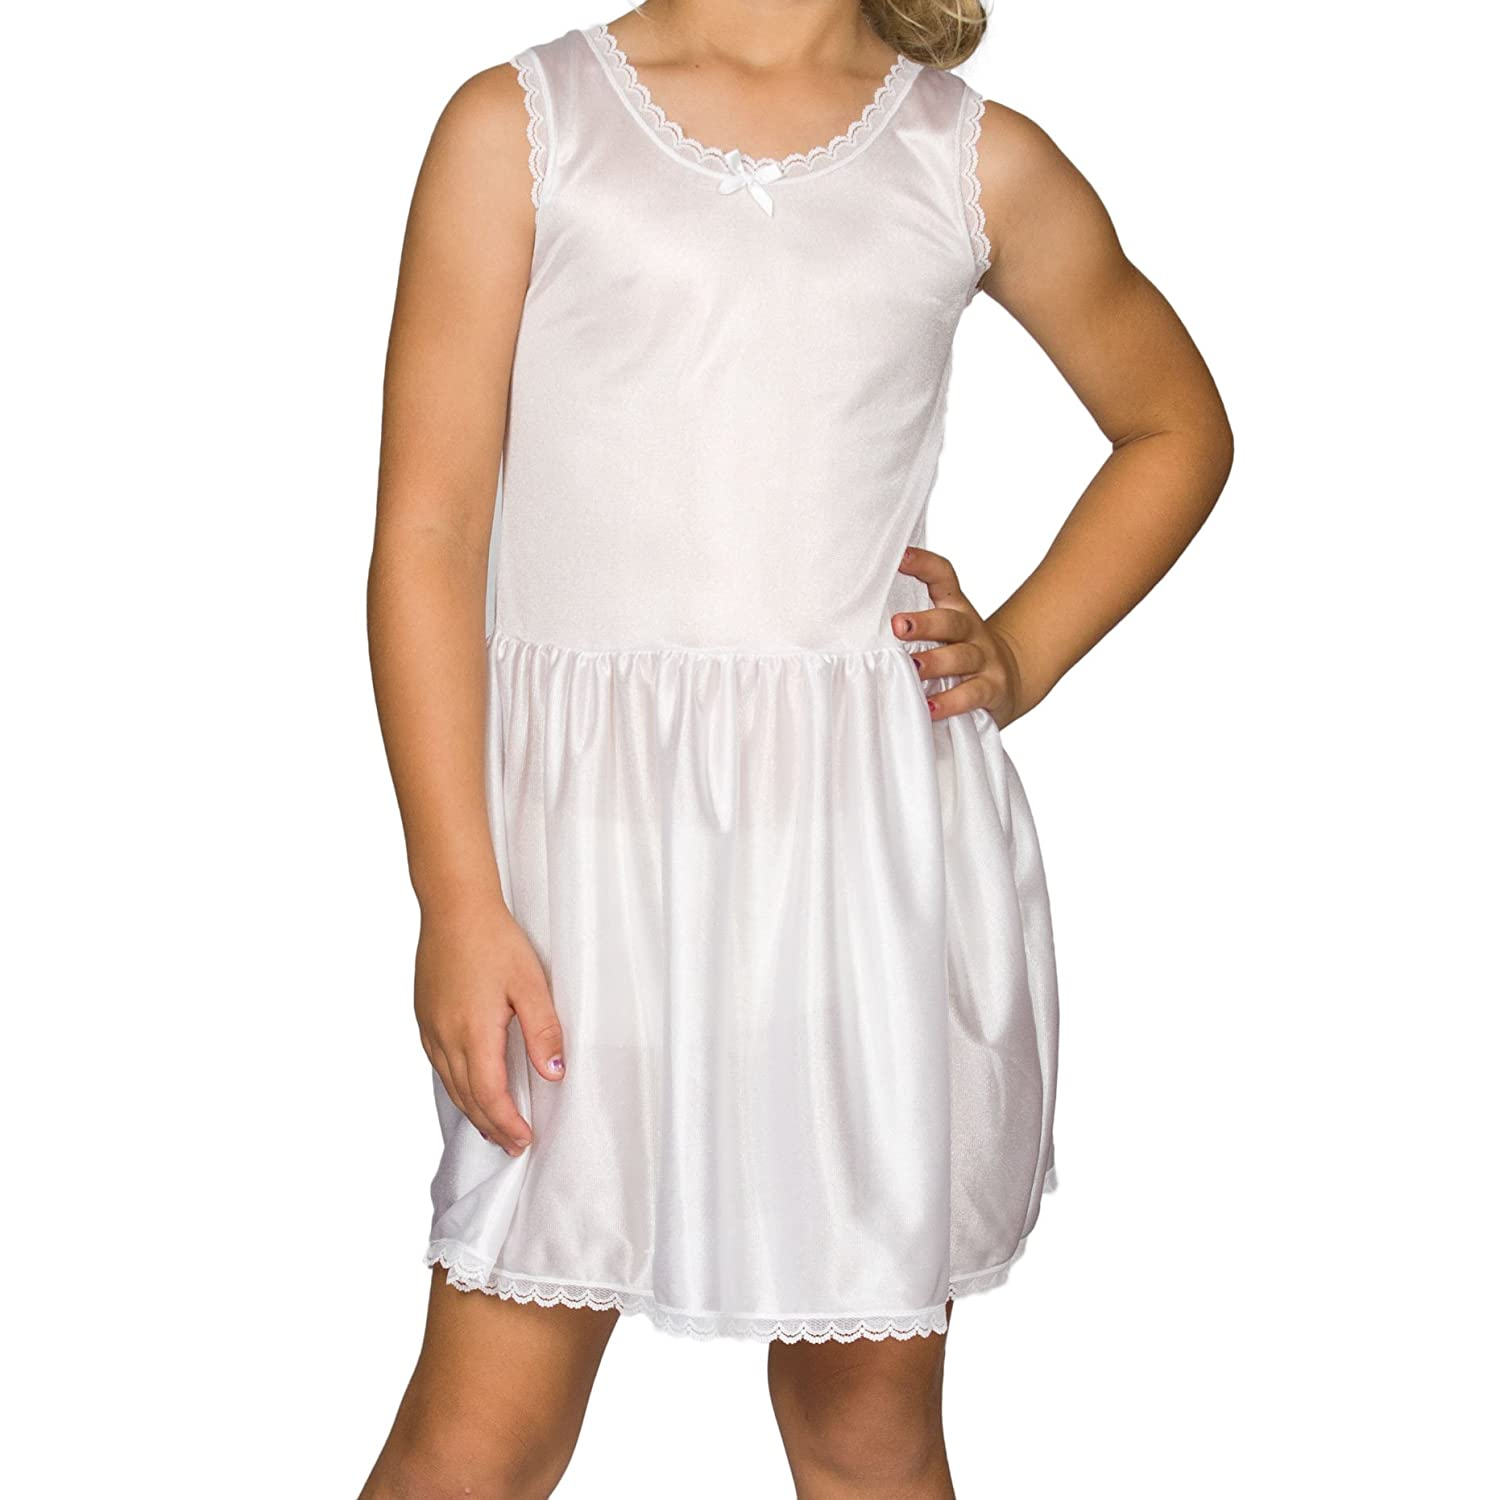 I.C. Collections Big Girls White Simple Nylon Slip, 10 New ICM 000472-WHC